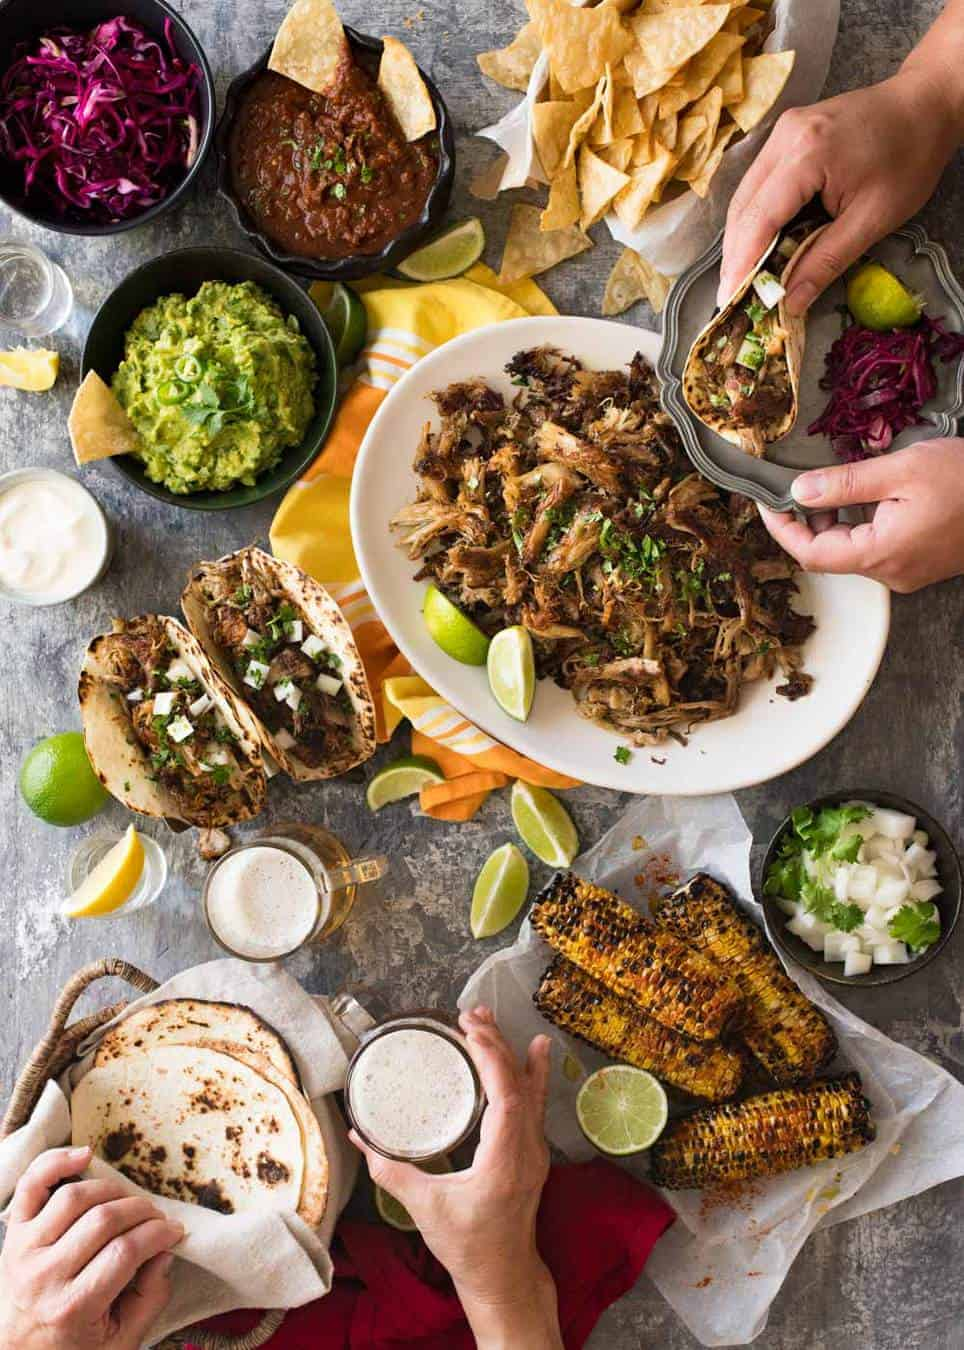 Overhead Photo Of Mexican Fiesta Taco Dinner Party With Pork Carnitas Tacos Grilled